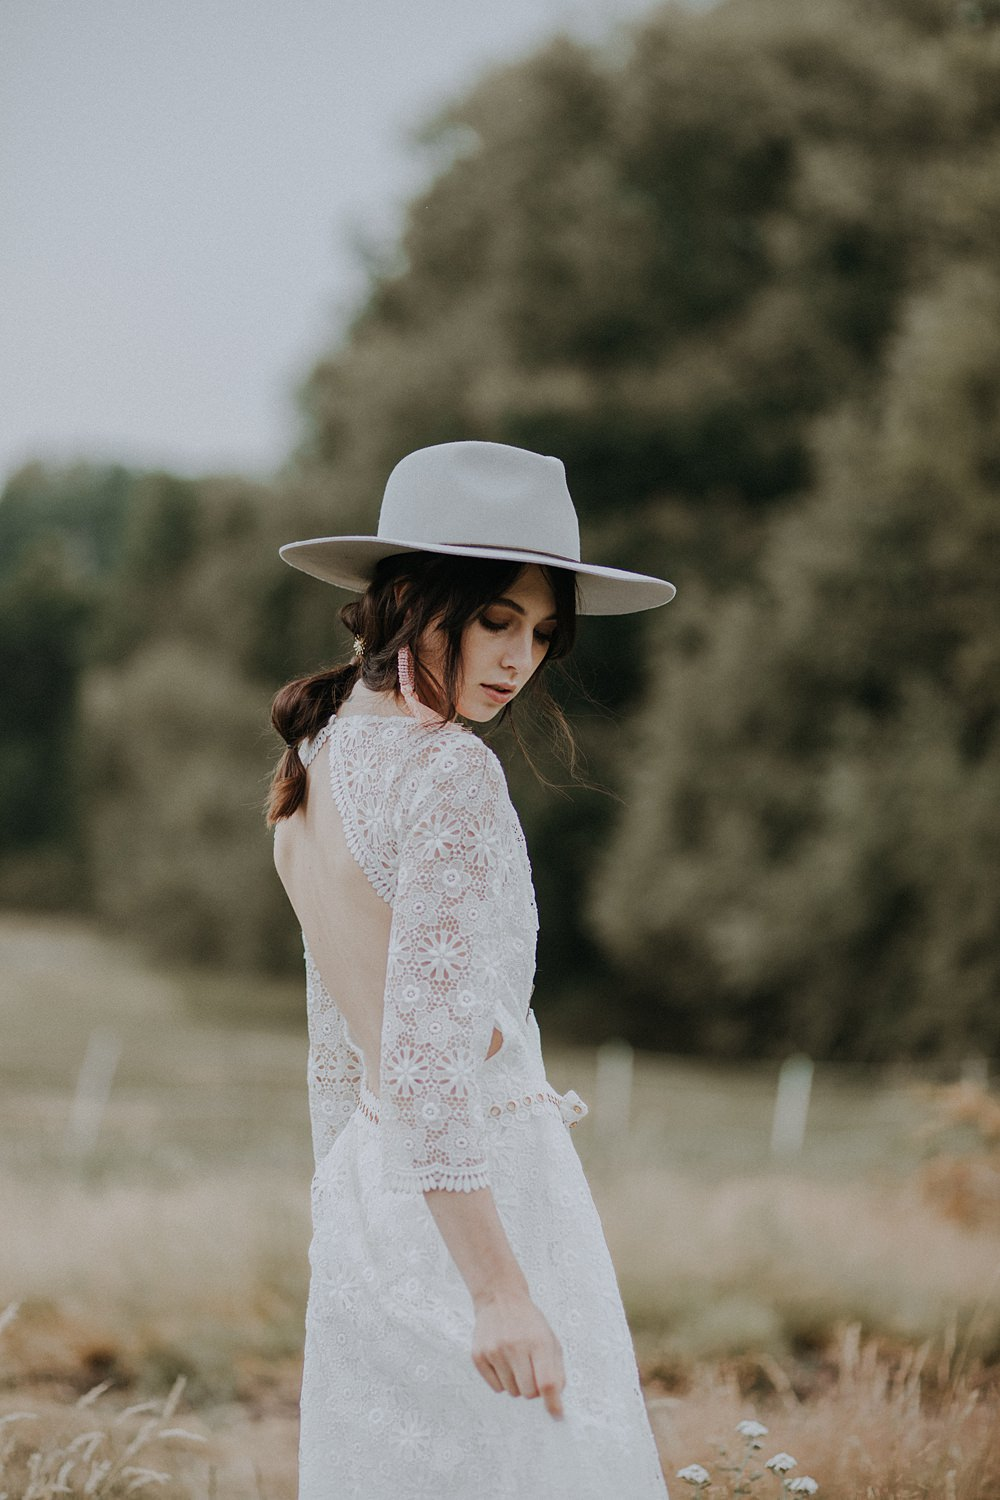 Dress Gown Bride Bridal Crochet Lace Sleeves Open Back Fedora Hat Bohemian Woodland Wedding Ideas Lola Rose Photography